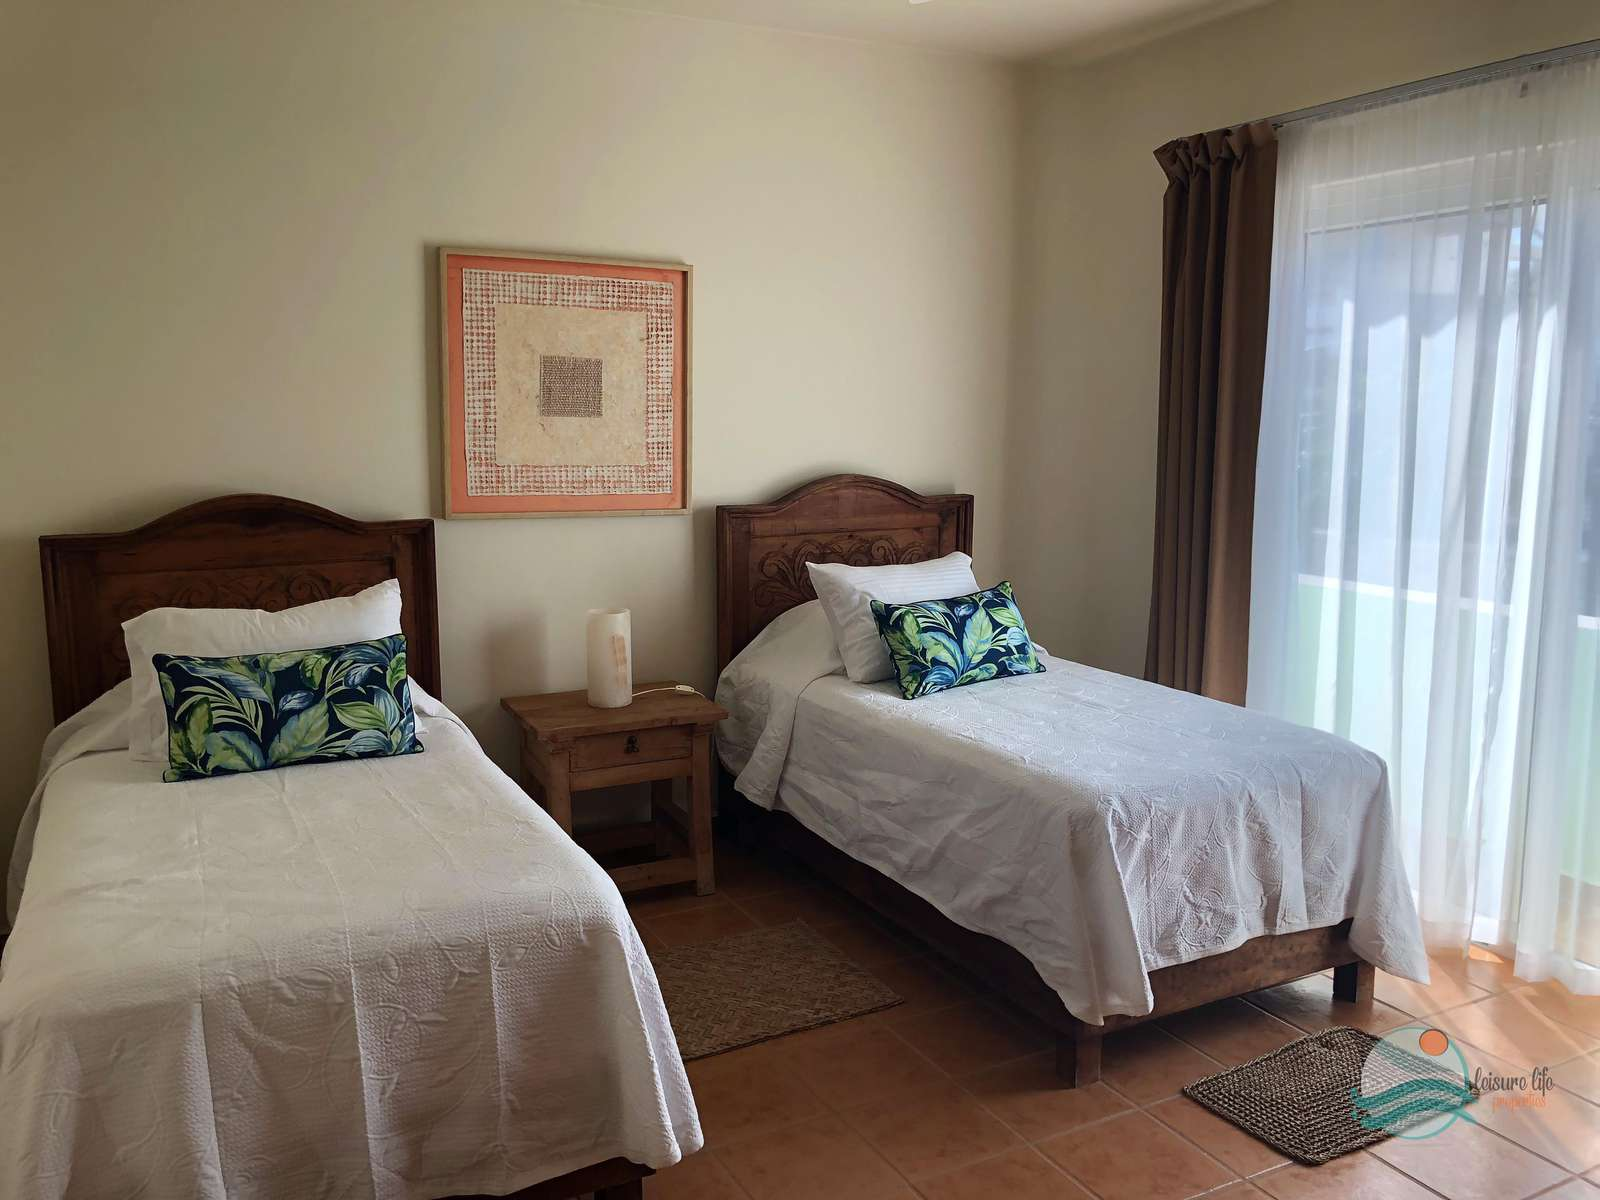 Guest BR Configured with two beds or can be joined.